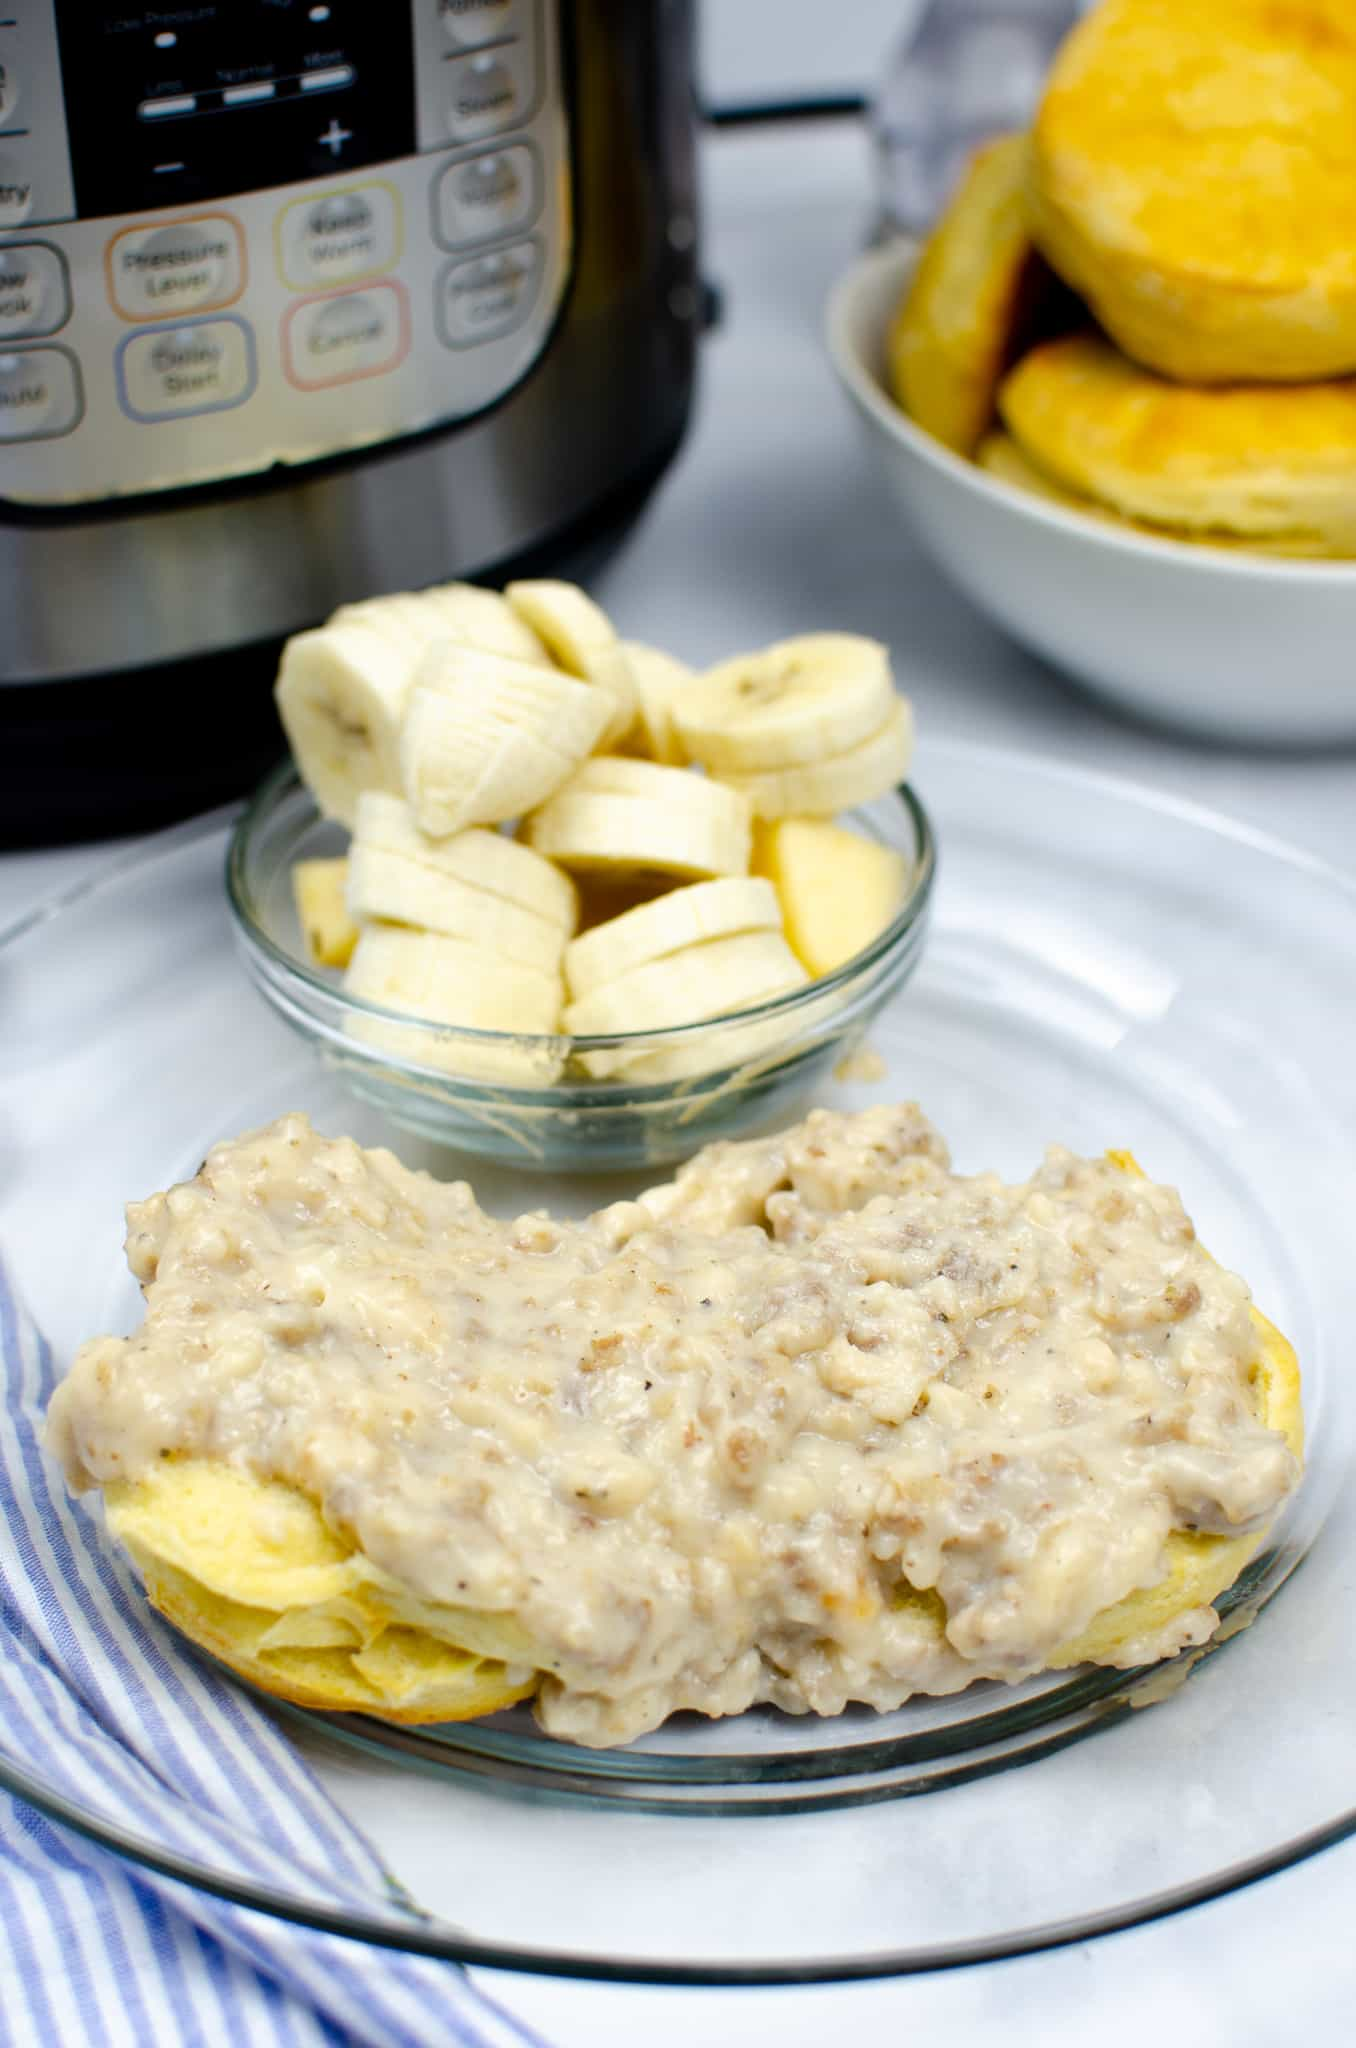 instant pot sausage gravy on clear plate with glass bowl of sliced bananas and white bowl full of biscuits in the background